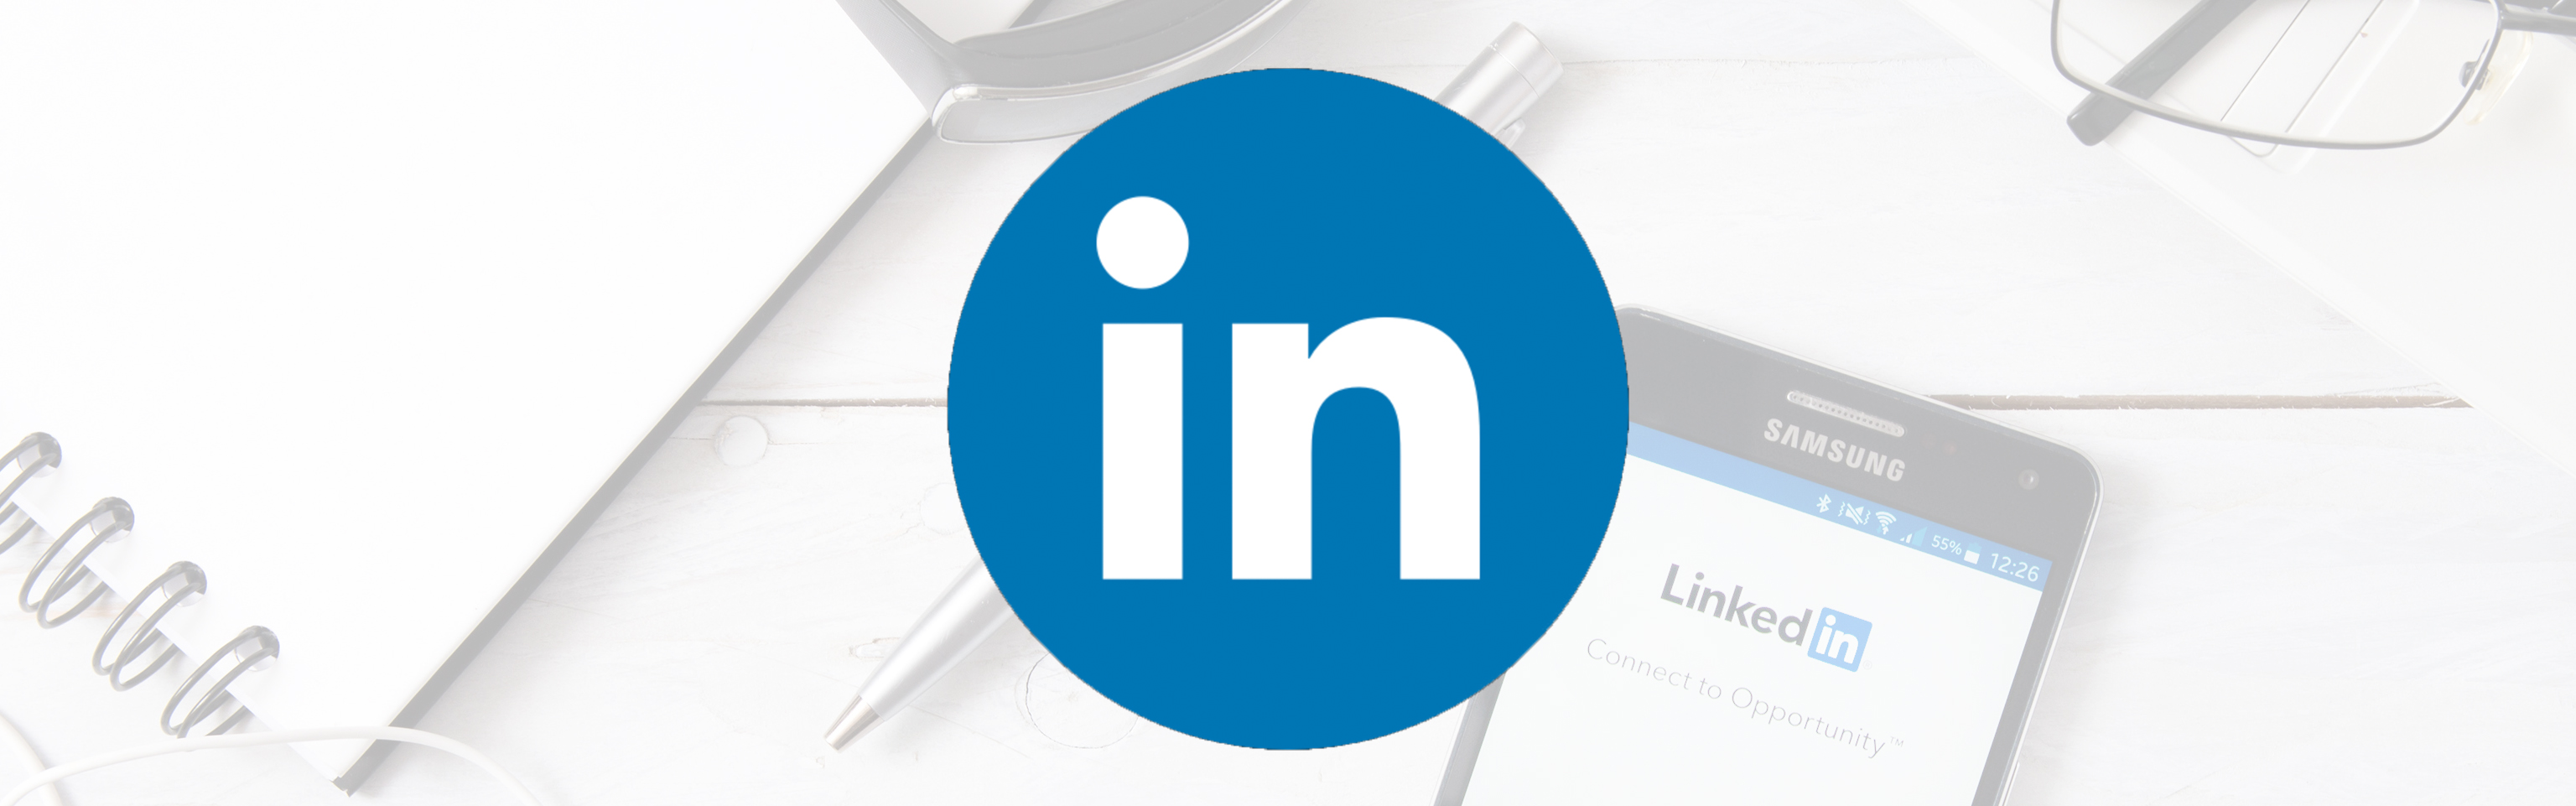 Let us help you with your LinkedIn channel